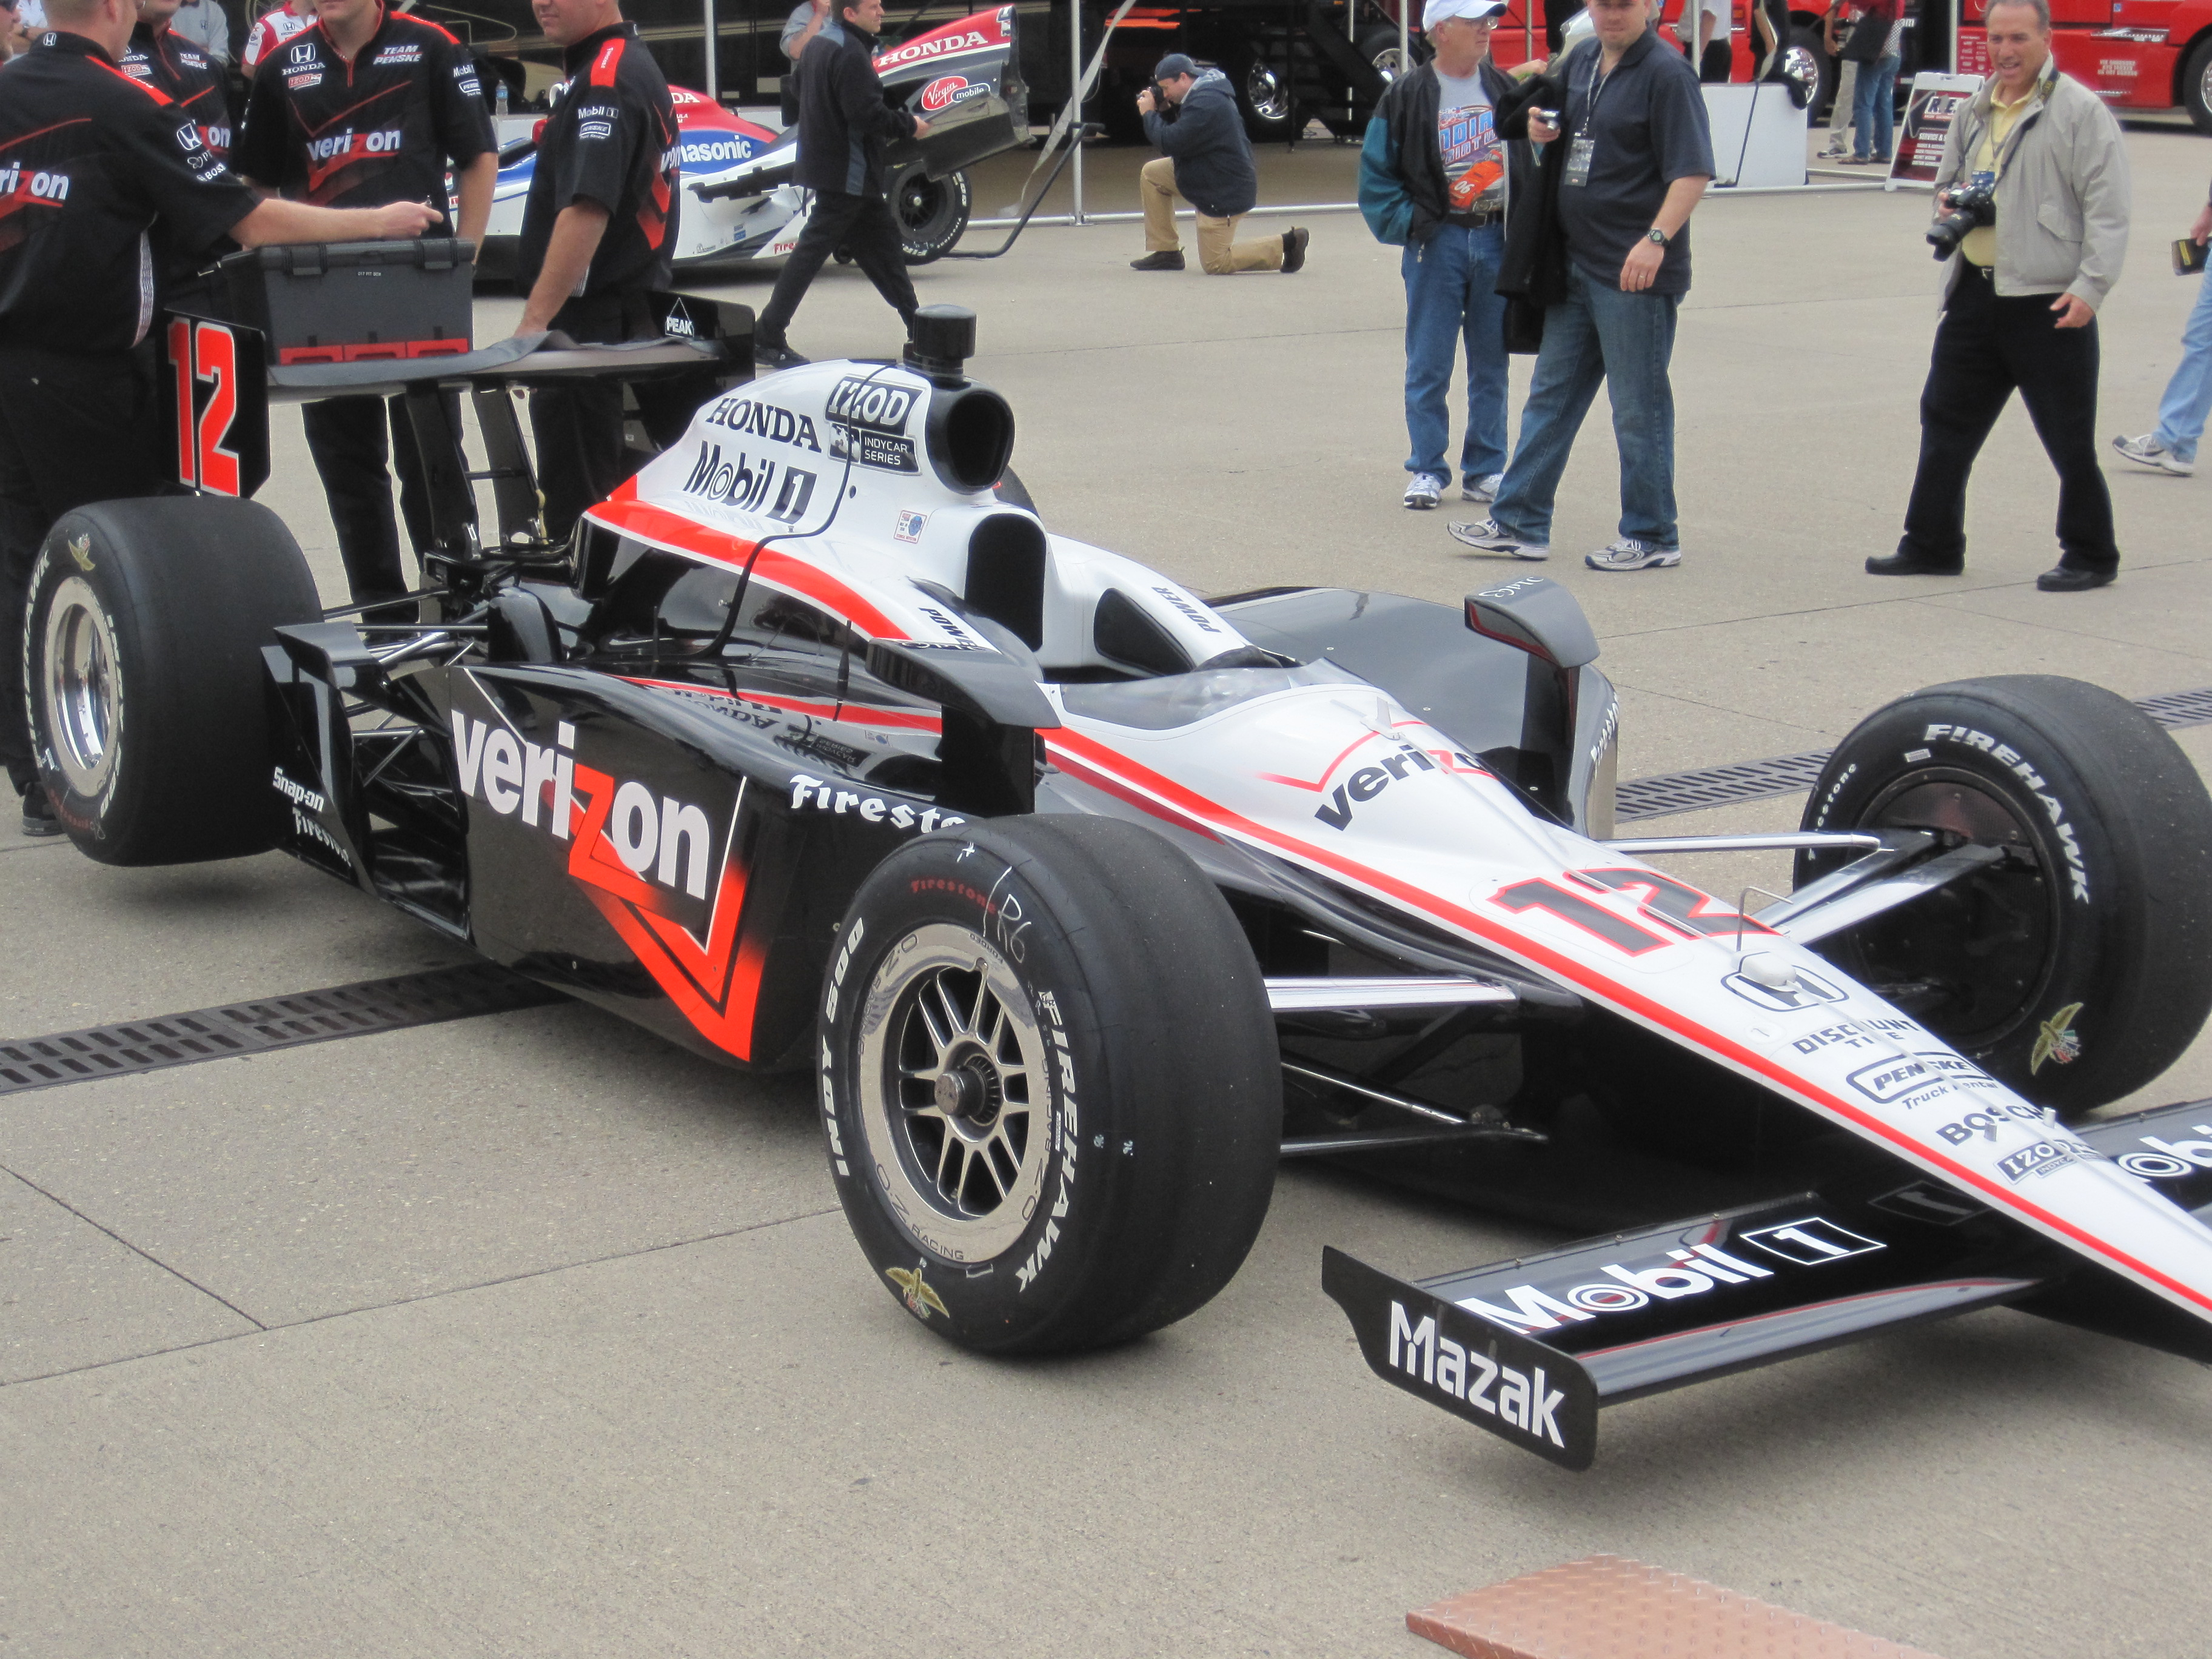 File will power car 2010 indy 500 practice day 7 jpg